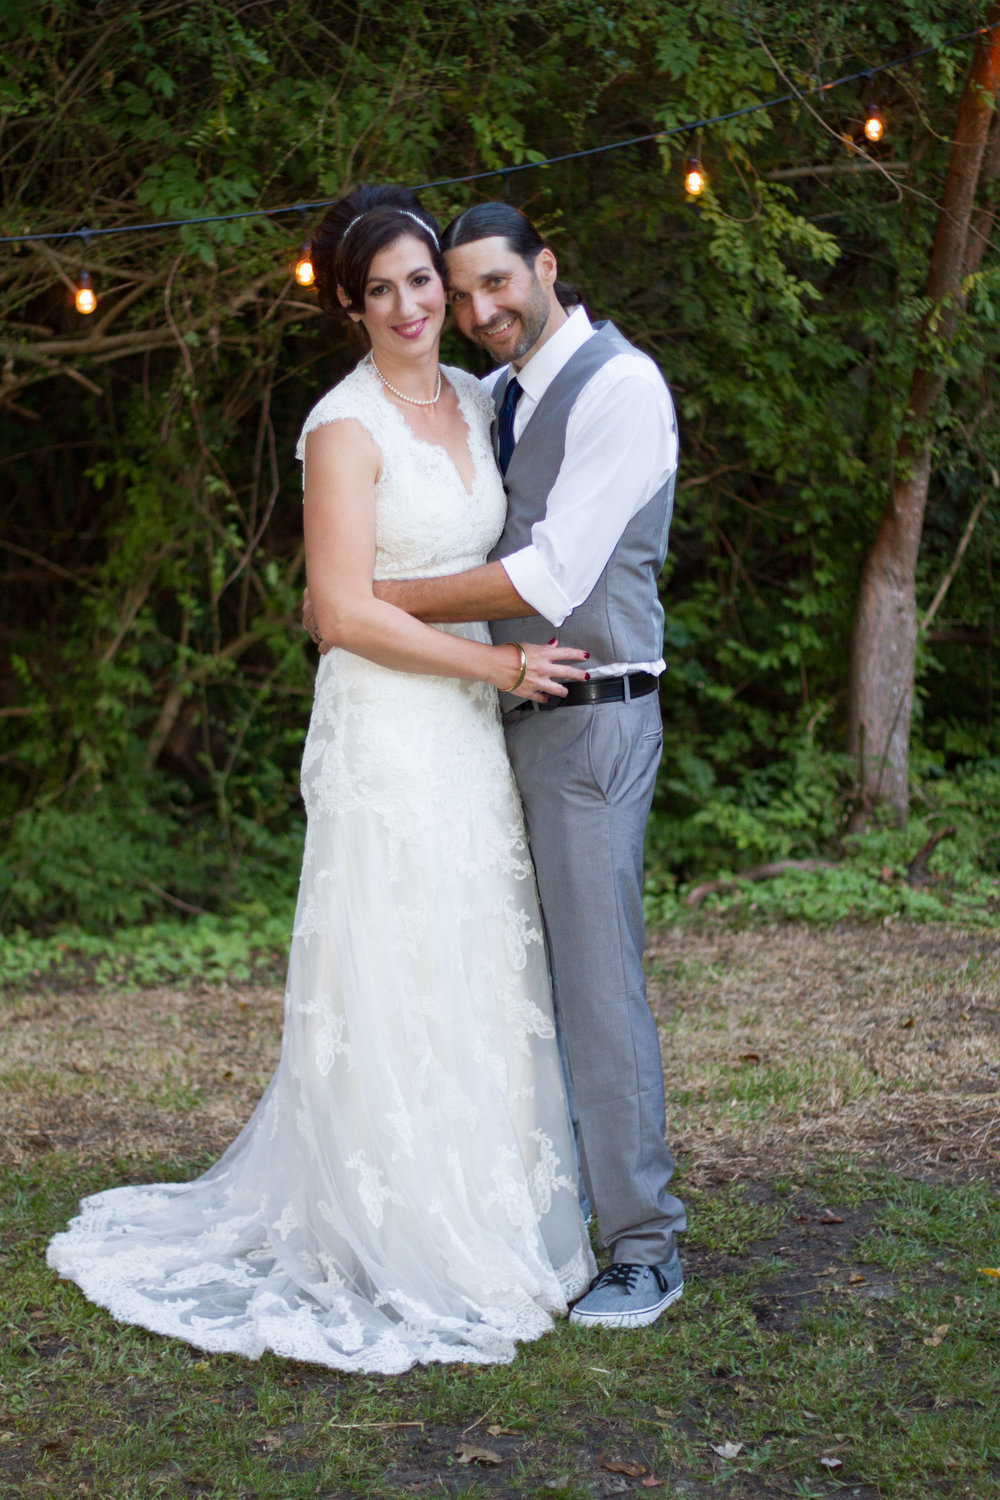 Jacqueline and Shawn Wedding (424 of 597).jpg